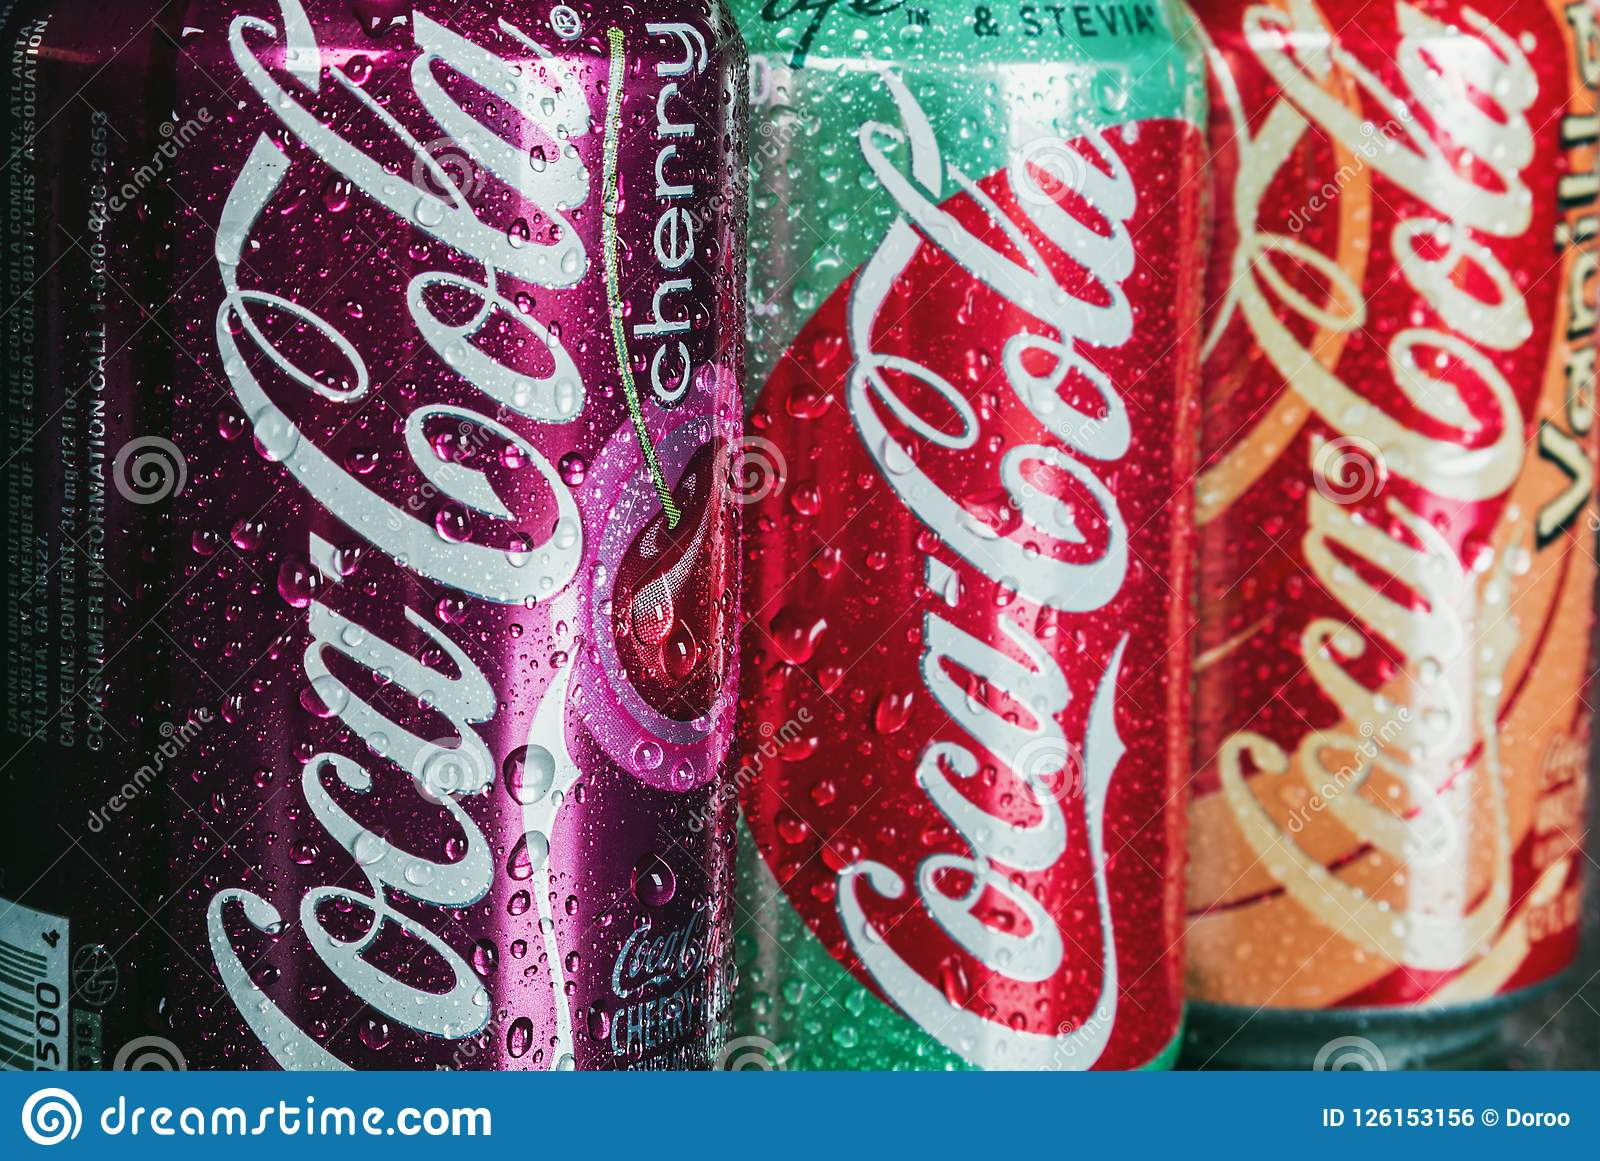 can Coca-Cola drink with different flavor